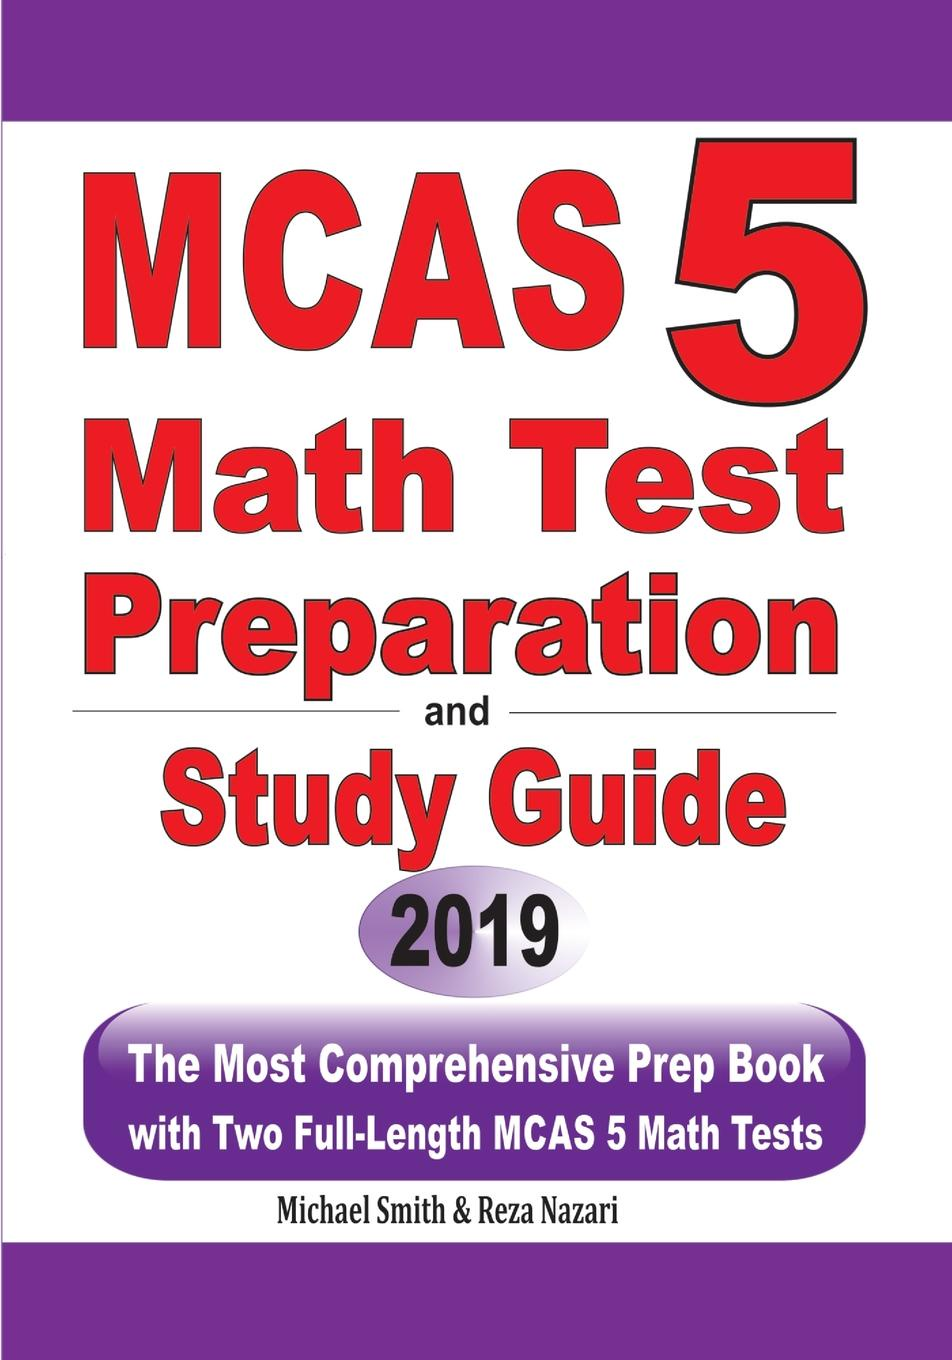 Michael Smith, Reza Nazari MCAS 5 Math Test Preparation and Study Guide. The Most Comprehensive Prep Book with Two Full-Length MCAS Math Tests